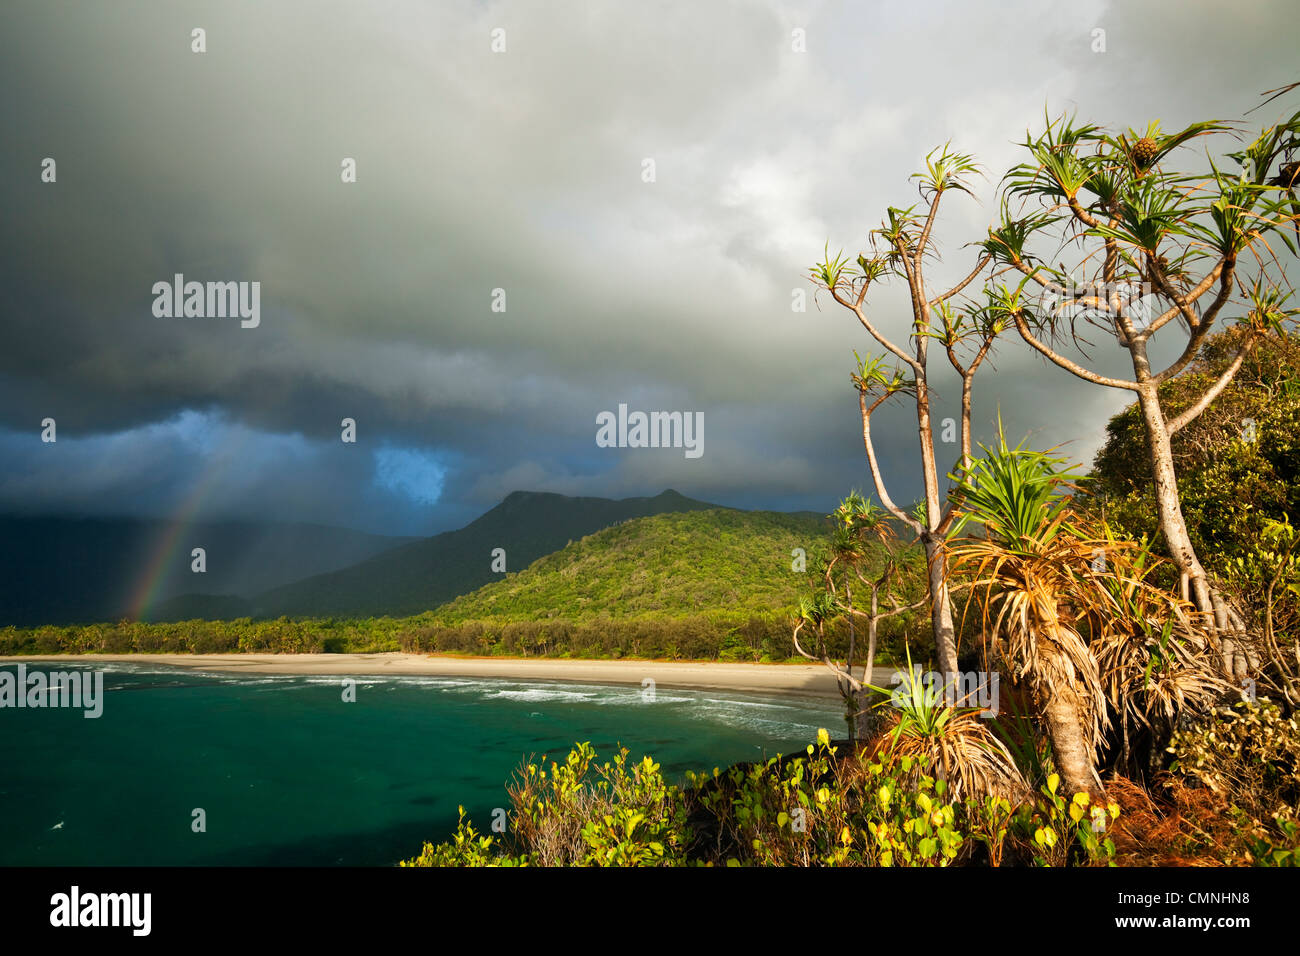 Avis de Myall Beach pendant la tempête de pluie du matin. Cape Tribulation, parc national de Daintree, Queensland, Photo Stock